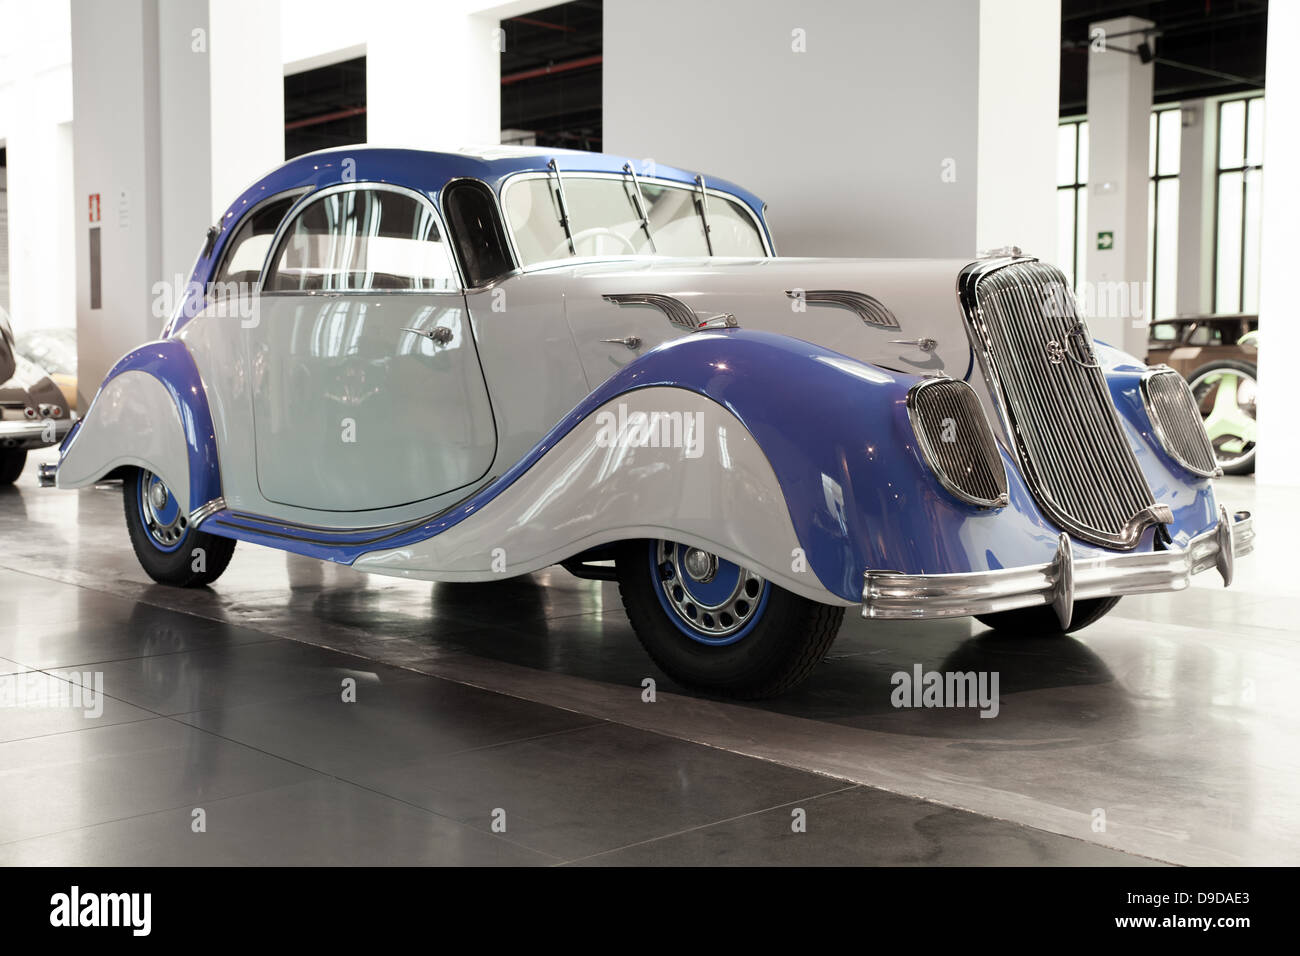 Malaga car museum: Panhard et Levassor classical car model Coupe. Panhard et Levassor was a French car manufacturer - Stock Image